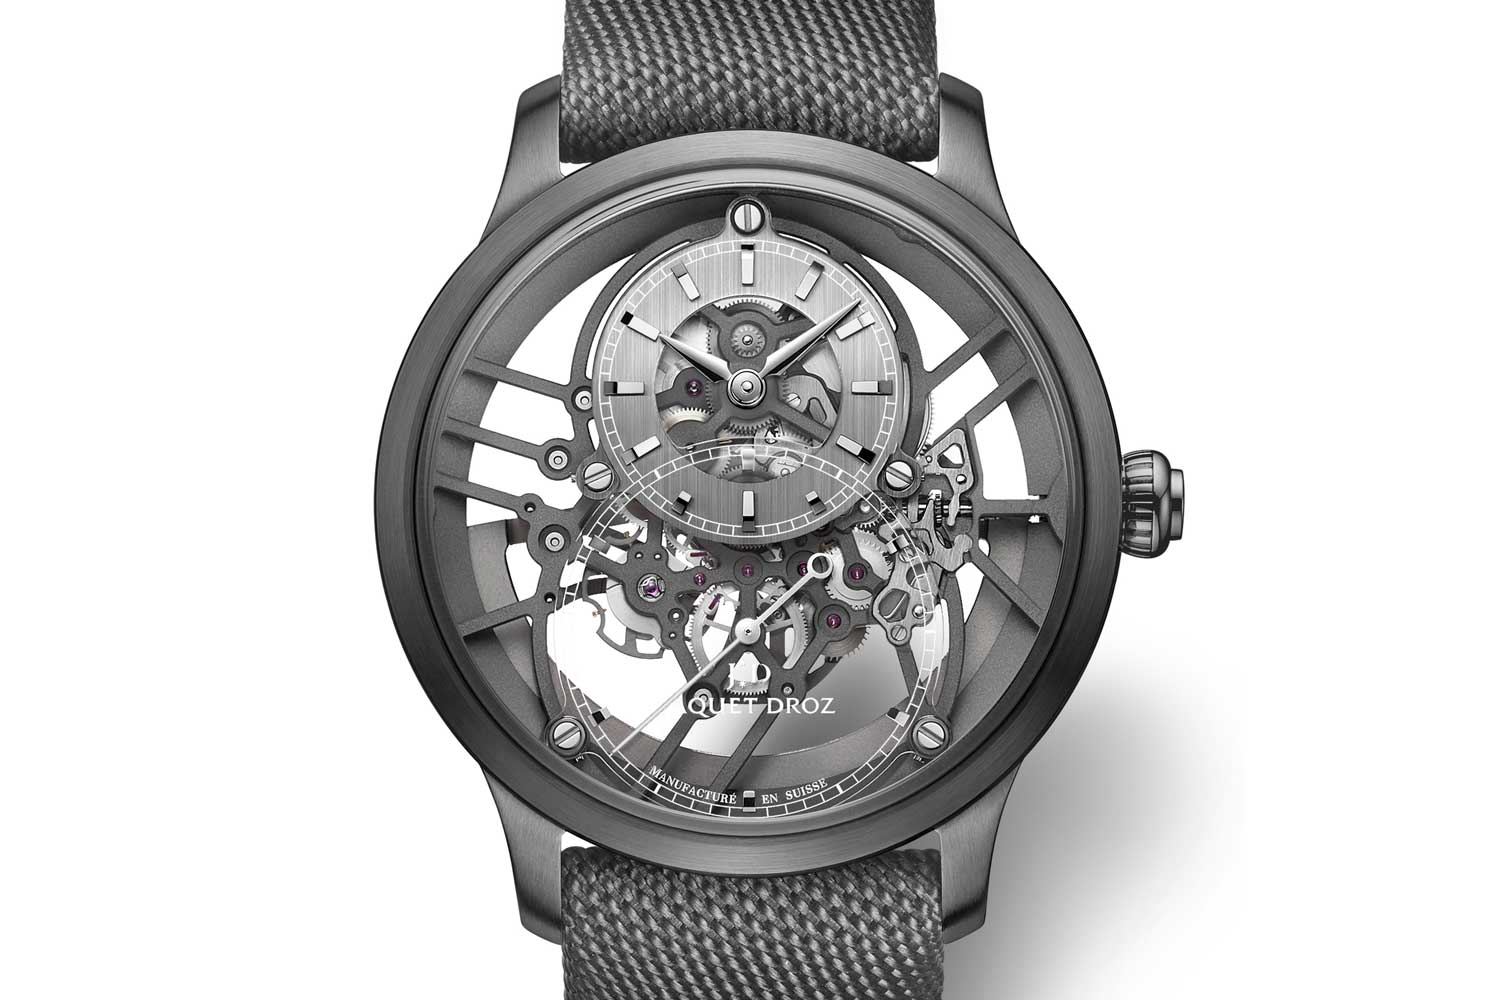 The 2020 The Jaquet Droz Grande Seconde Skelet-One in black plasma ceramic (41.5 mm), which is a color that is obtained by subjecting the ceramic material through two heating processes, the latter requires temperatures of 20,000º Celsius